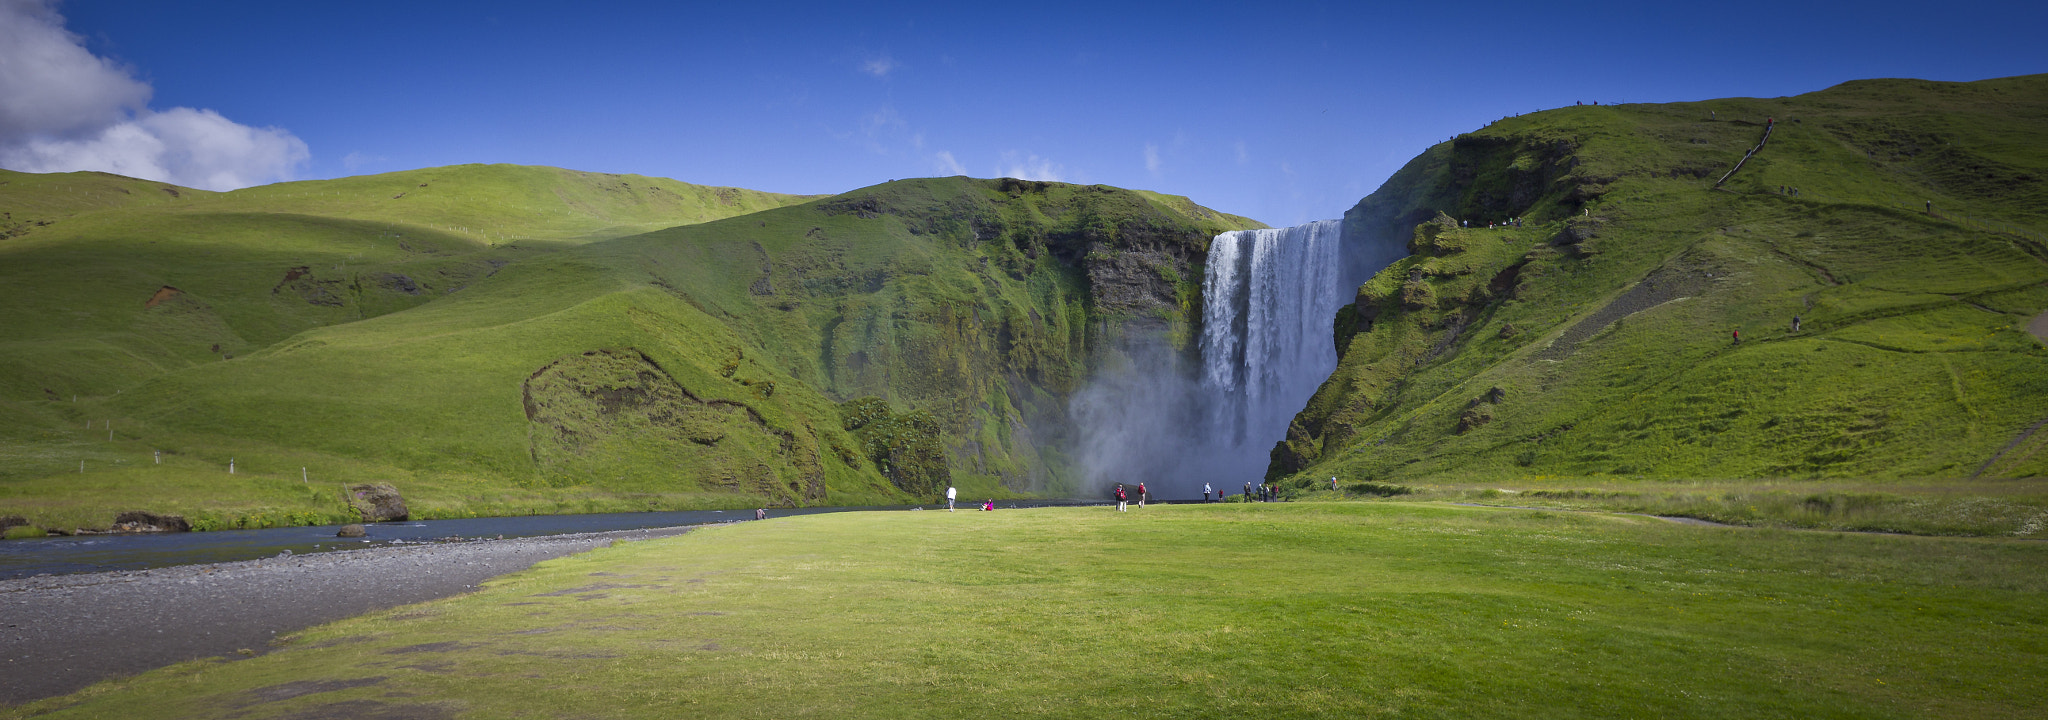 Photograph Skógafoss by Jonathan Cox on 500px